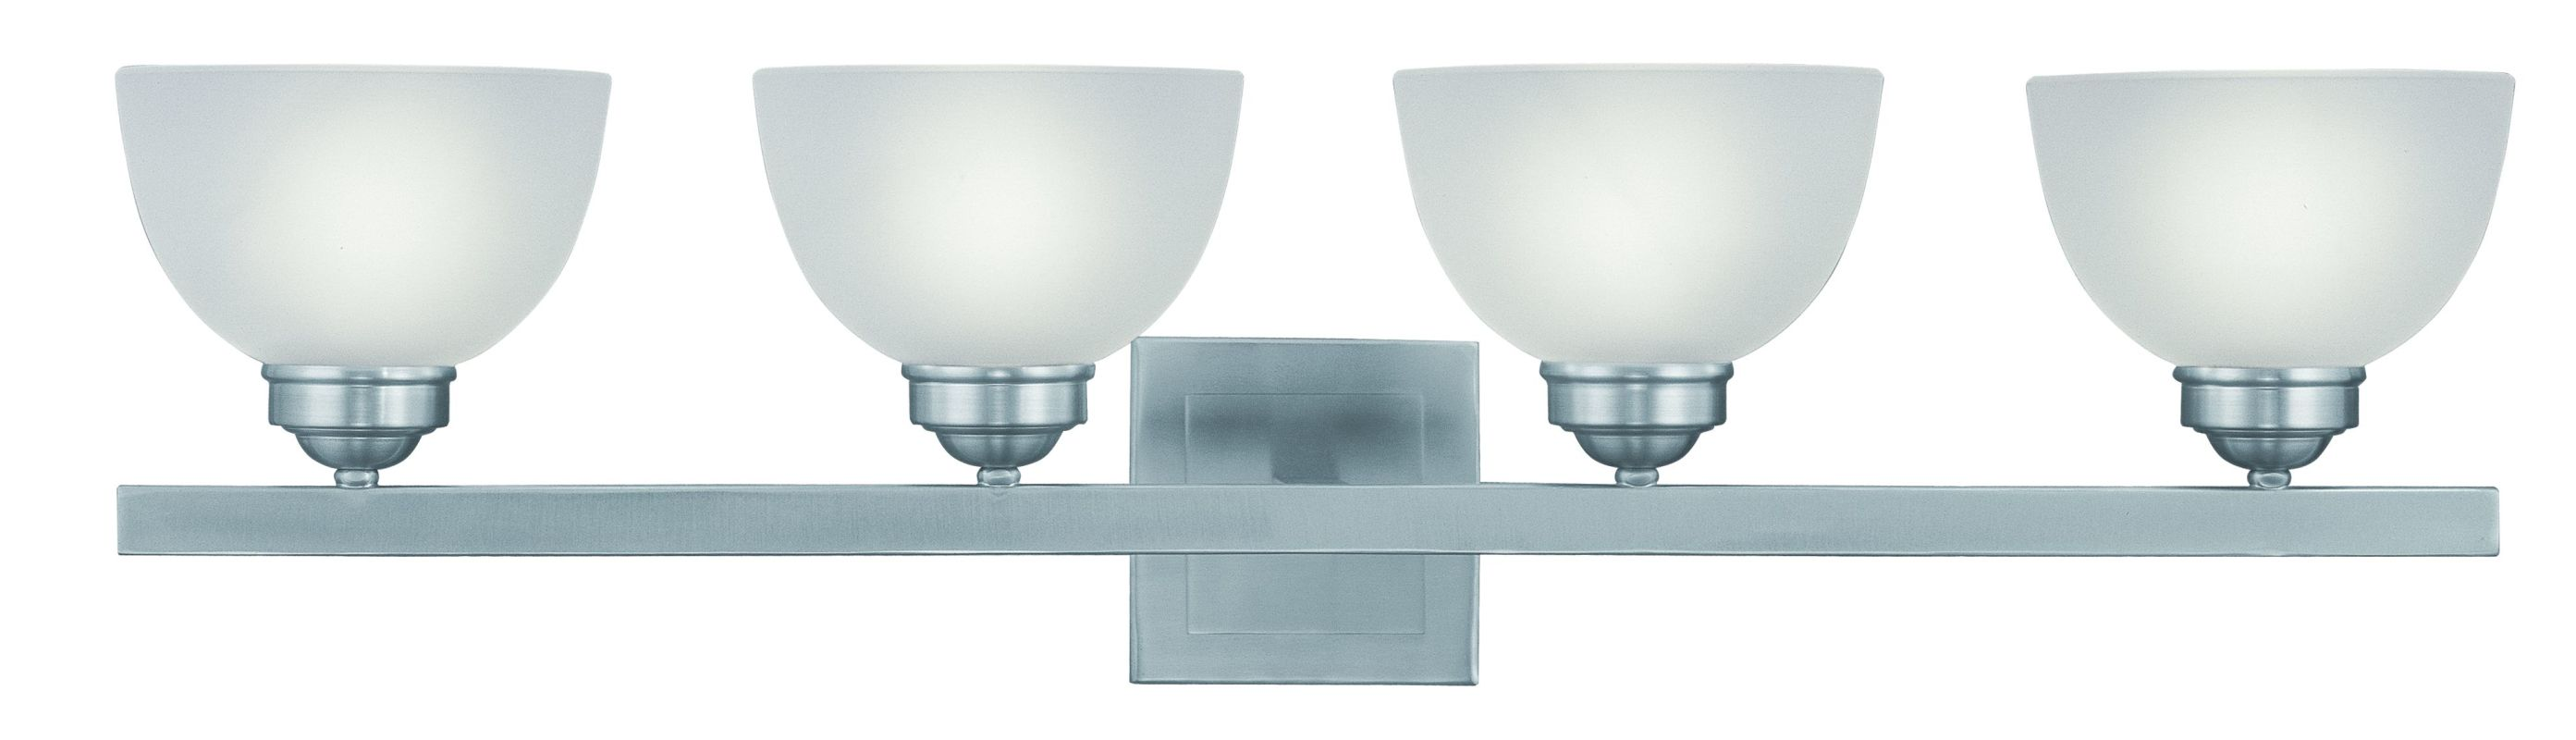 "Livex Lighting 4204 4 Light 400 Watt 33.75"" Wide Bathroom Fixture with"